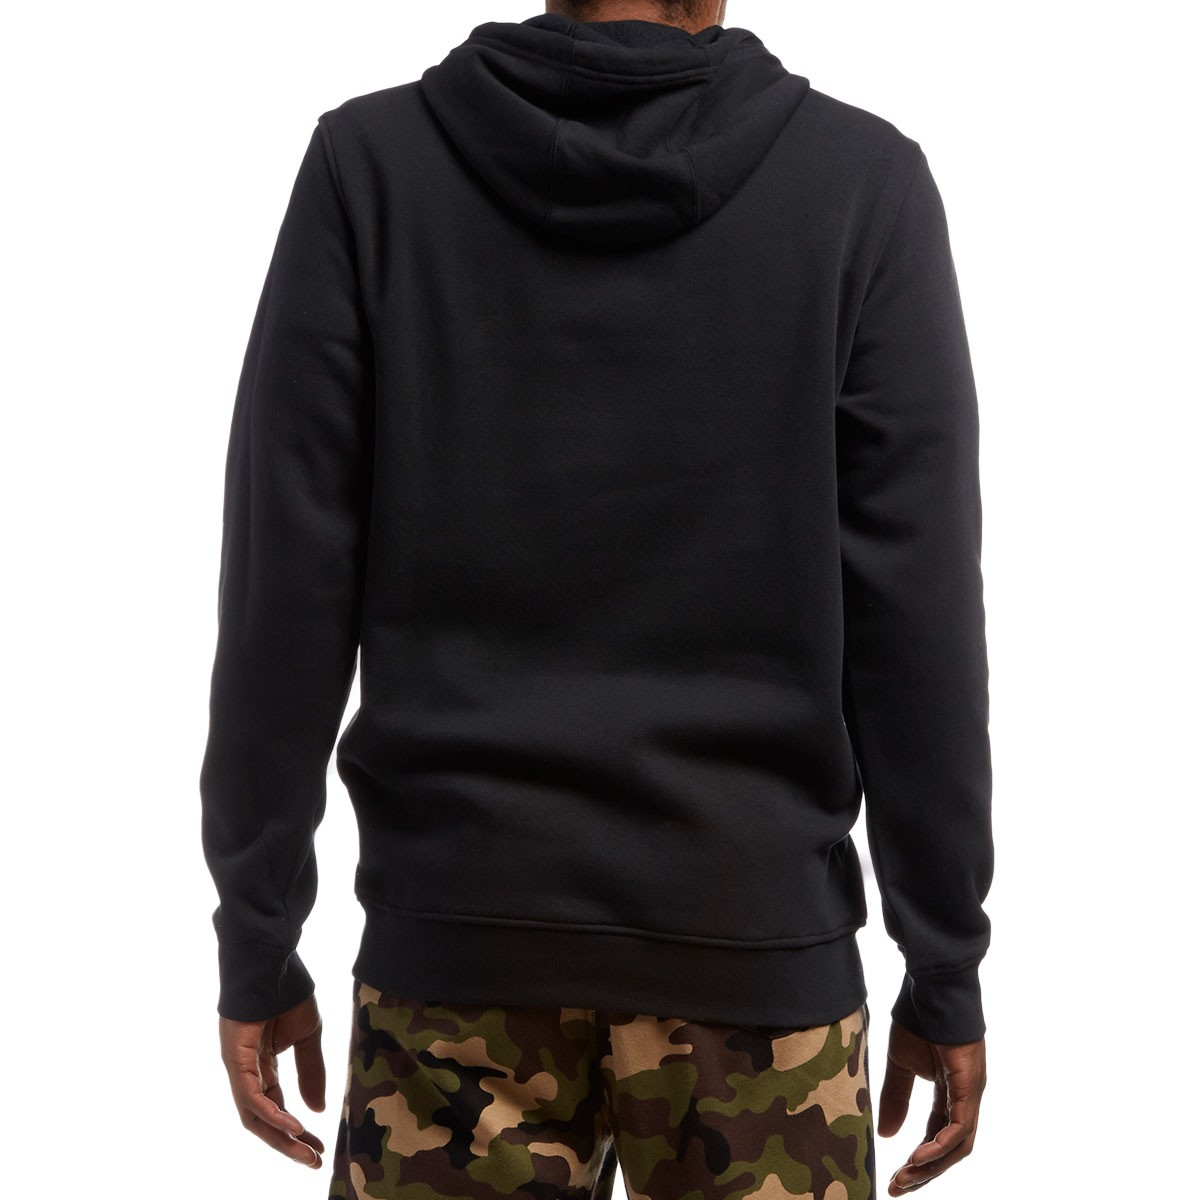 cheap adidas camo hoodie. Black Bedroom Furniture Sets. Home Design Ideas